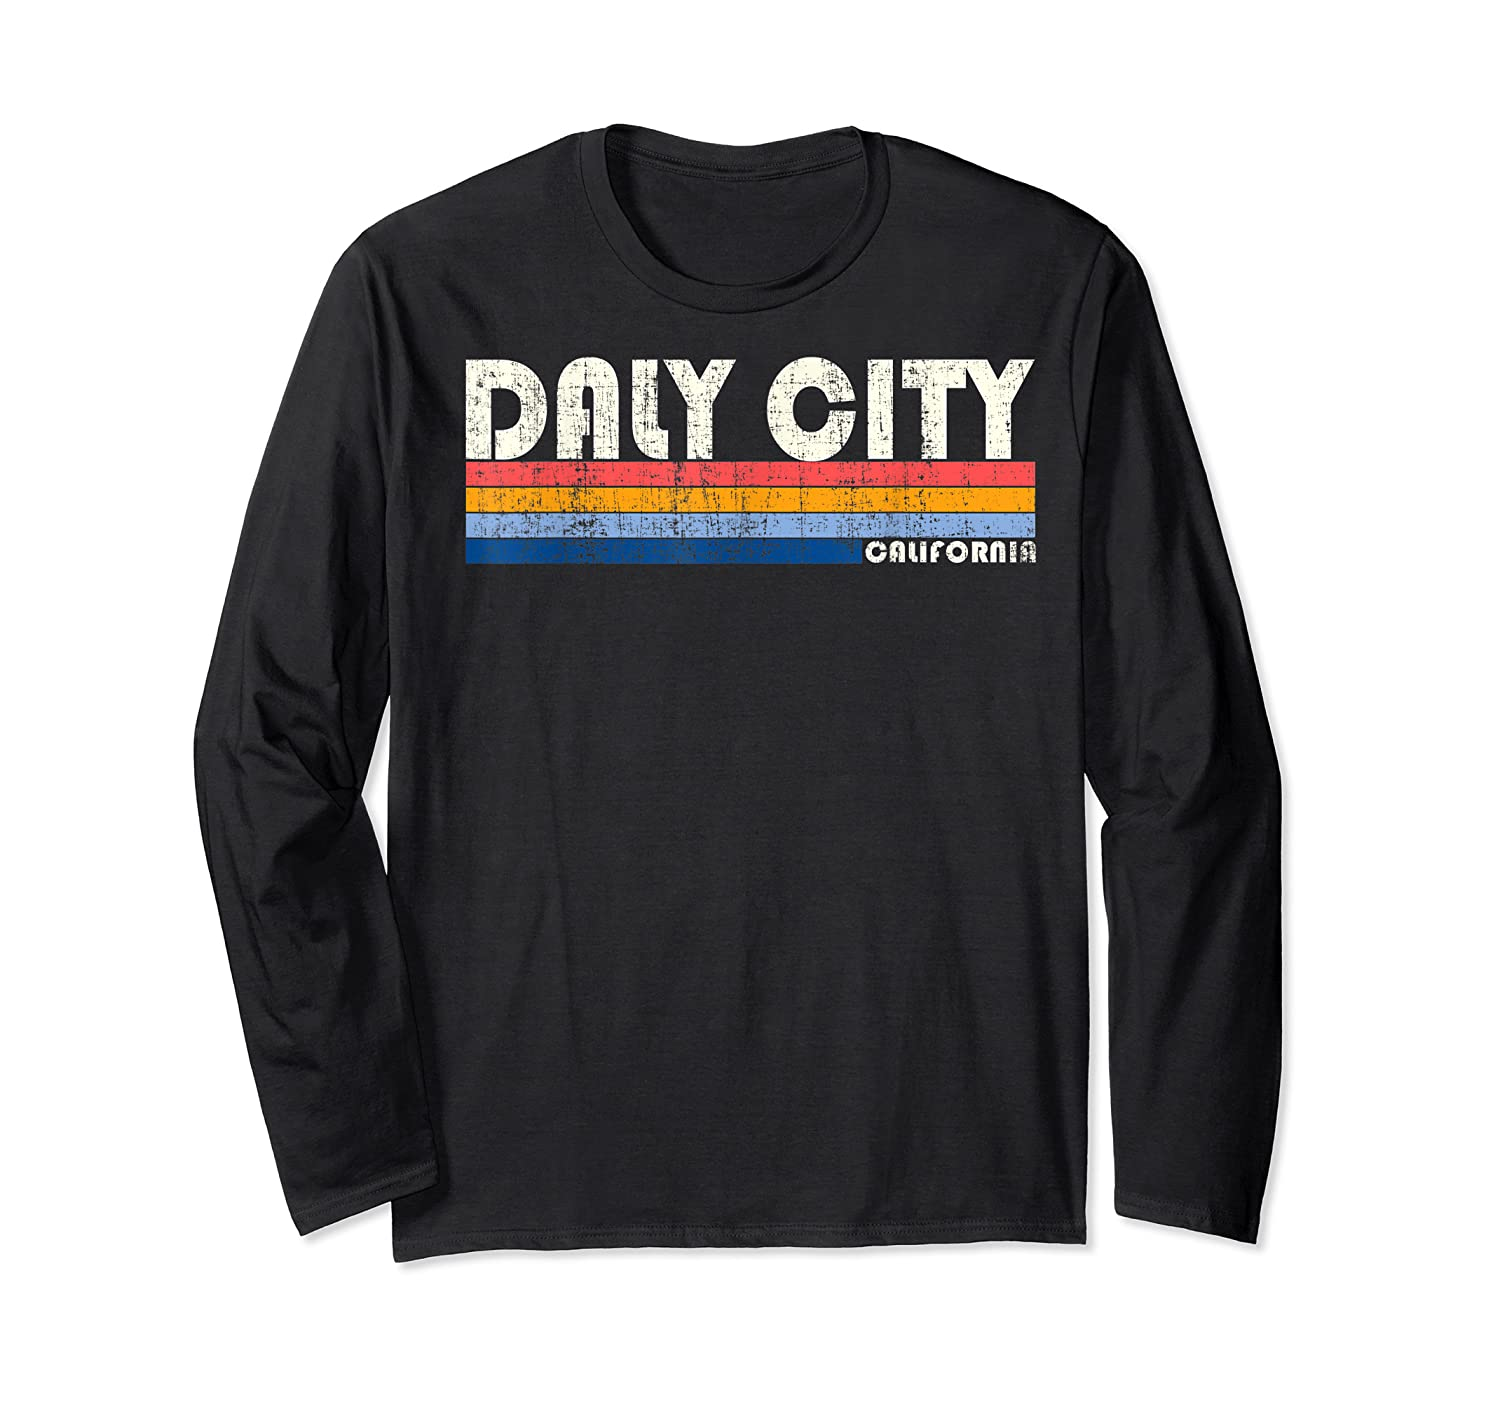 Vintage 70s 80s Style Daly City Ca T Shirt Long Sleeve T-shirt